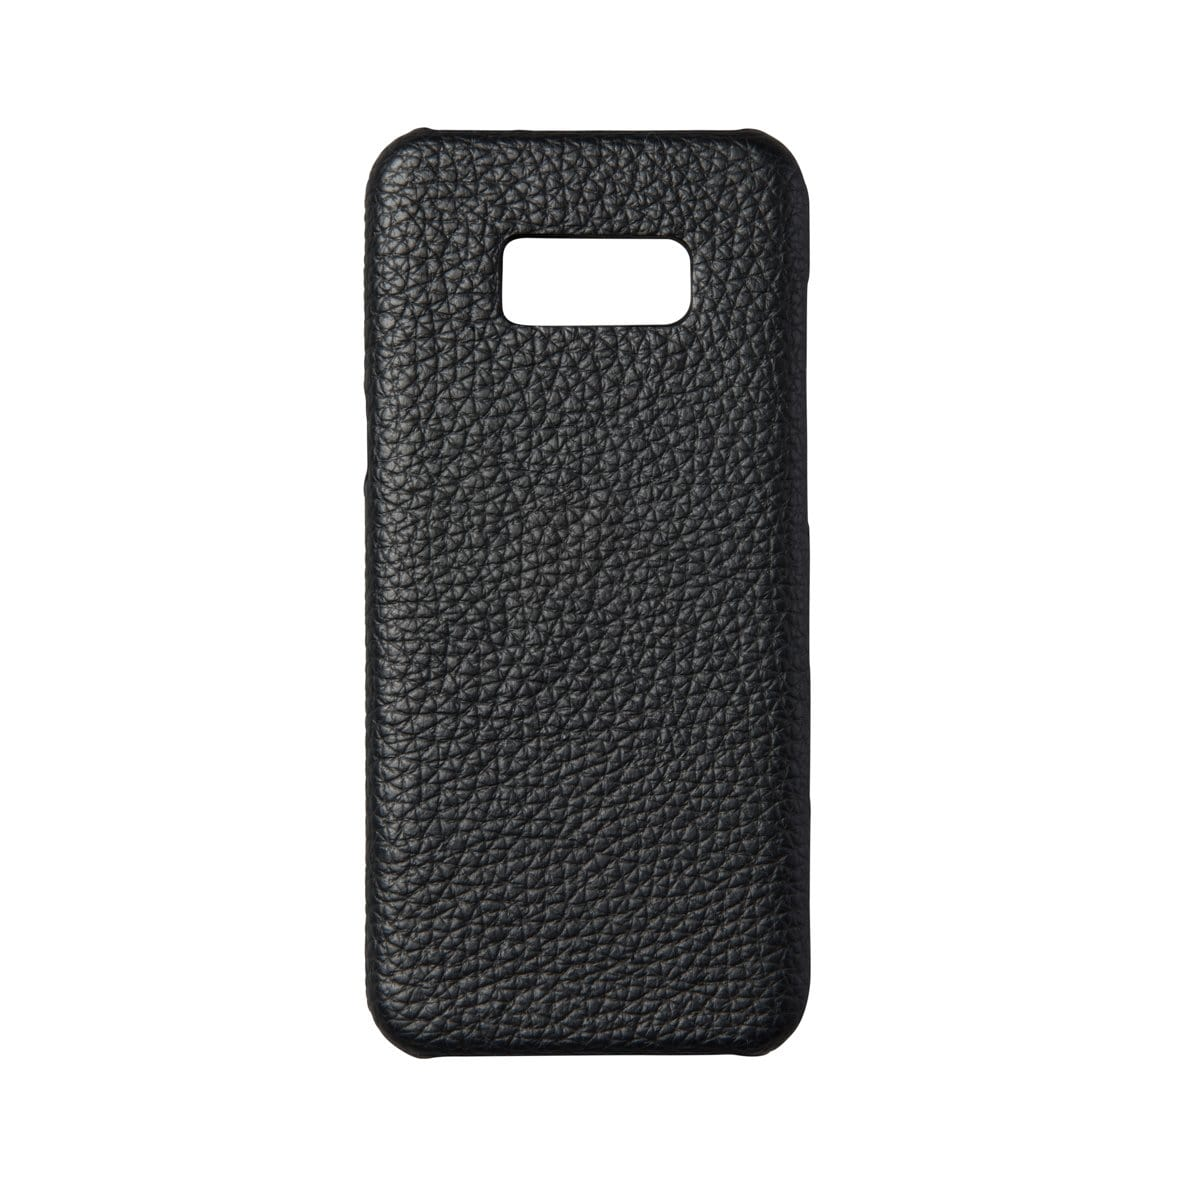 Jet Black Phone Case (Samsung 8+)